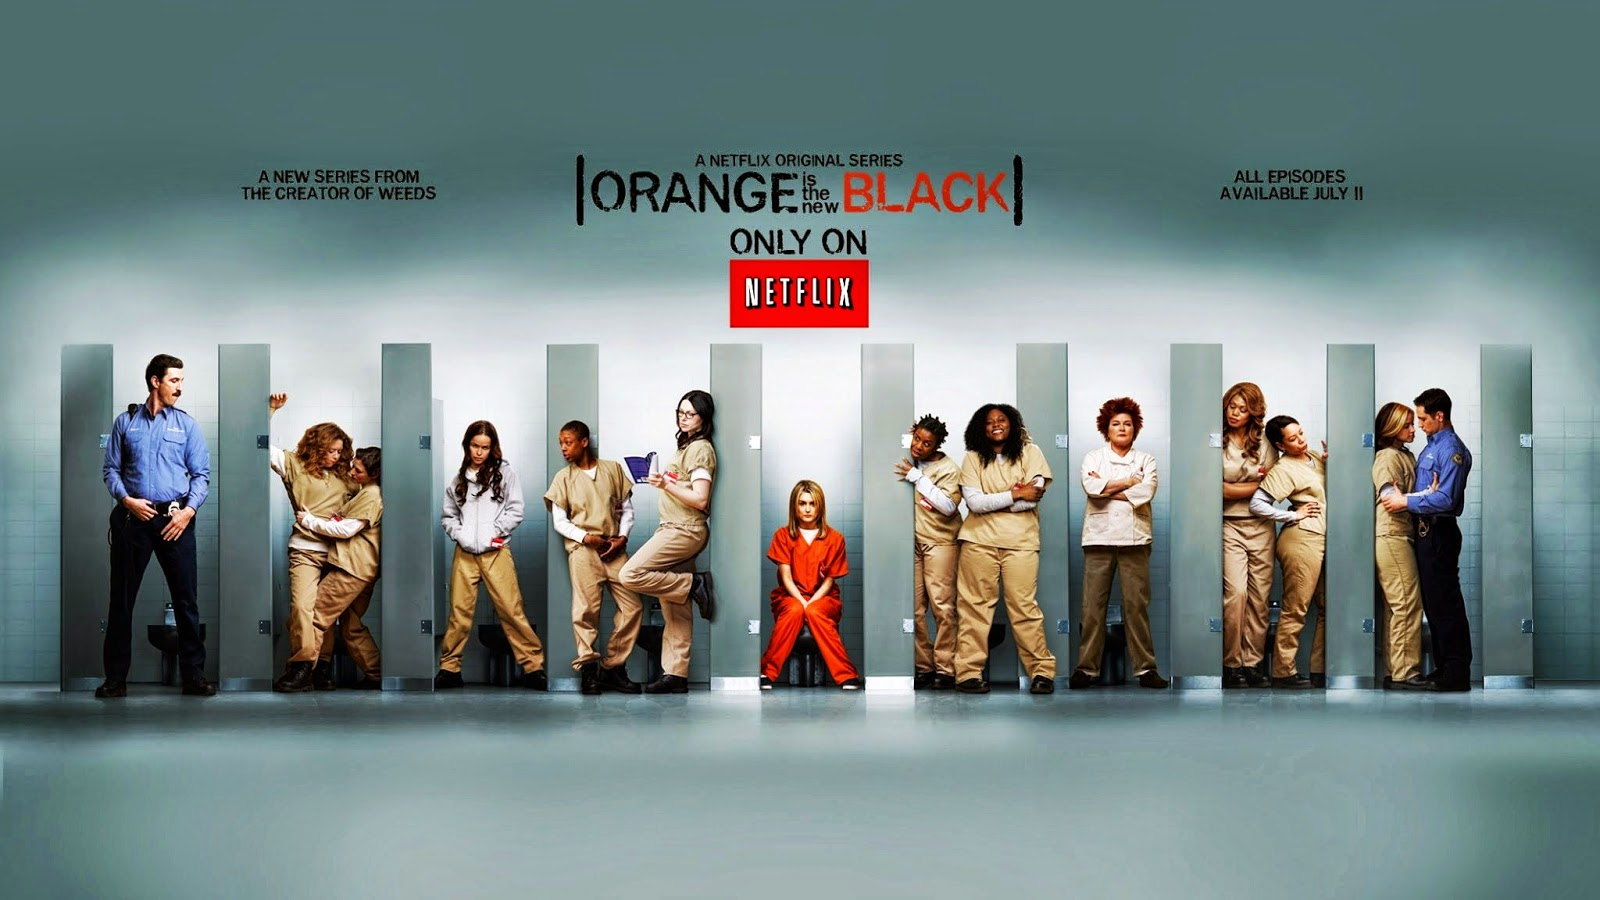 Cartel promocional de Orange is the new Black